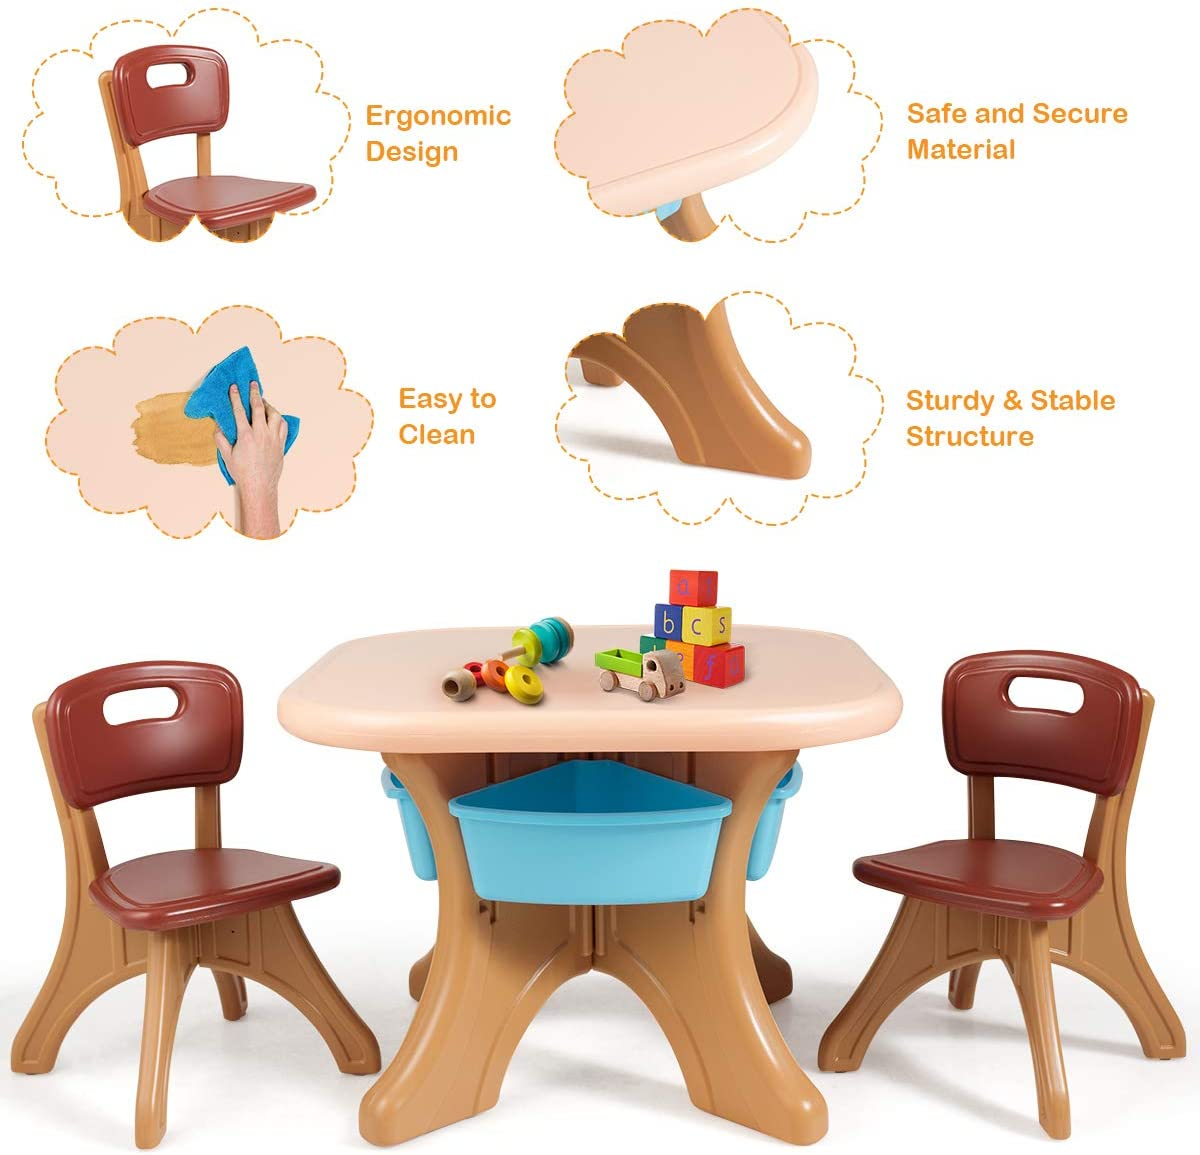 Childrens Art and Activity Desk and Chair Set with Detachable Storage Bins